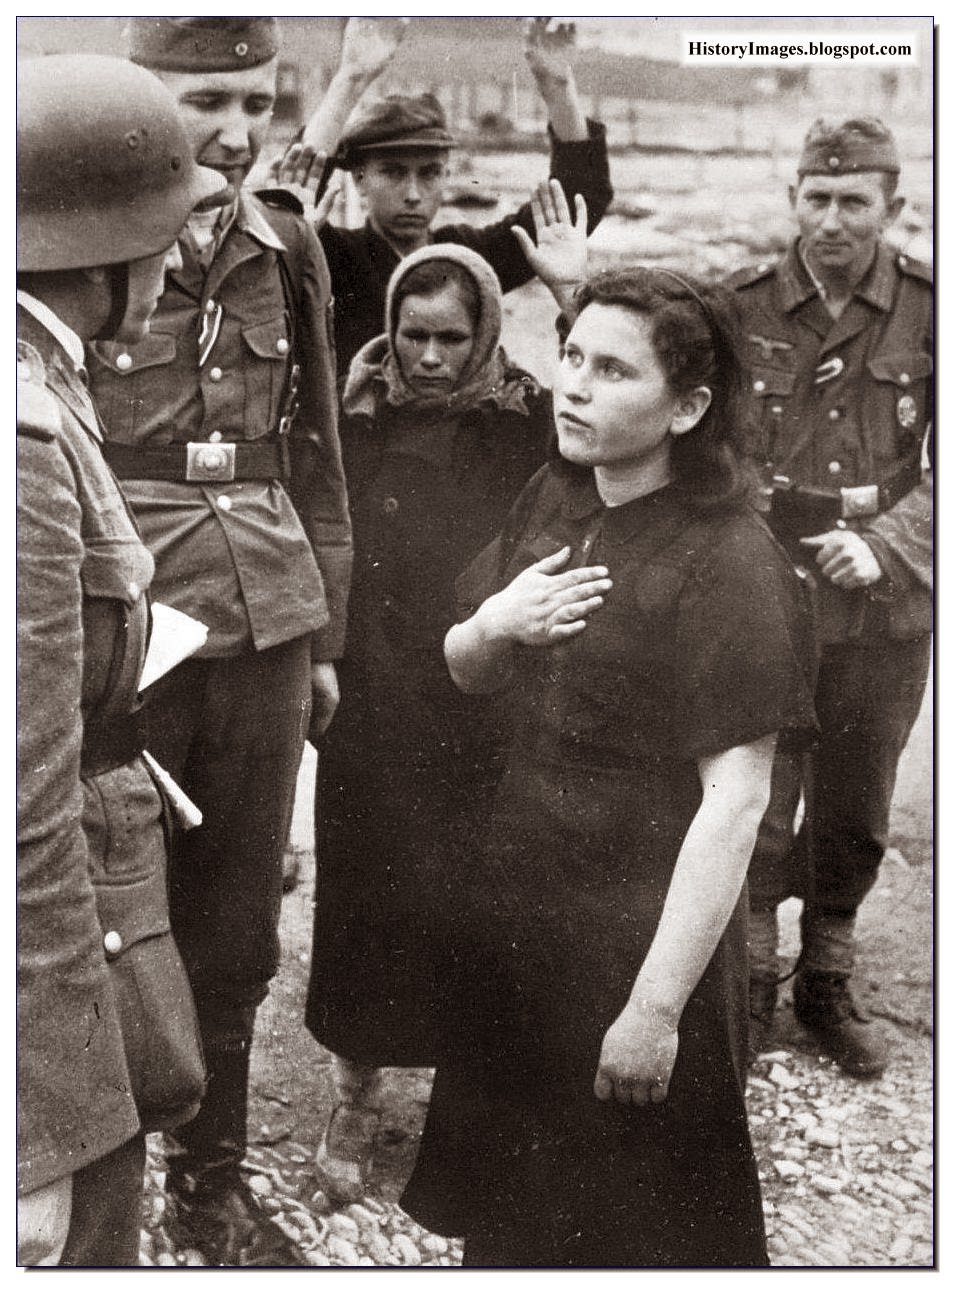 German soldiers listen carefully  Russian lady  saying. Novorossiysk, 1942 Rare WW2 Images